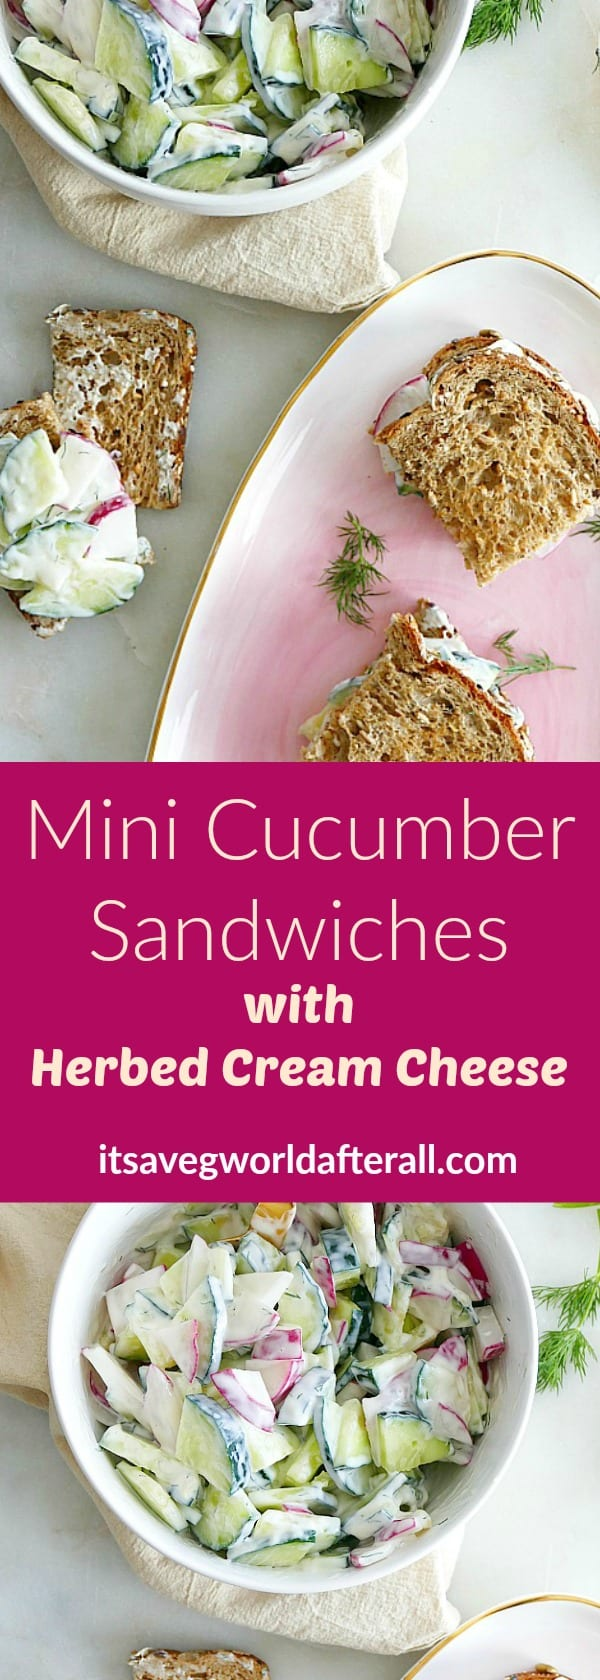 Mini Cucumber Sandwiches with Herbed Cream Cheese